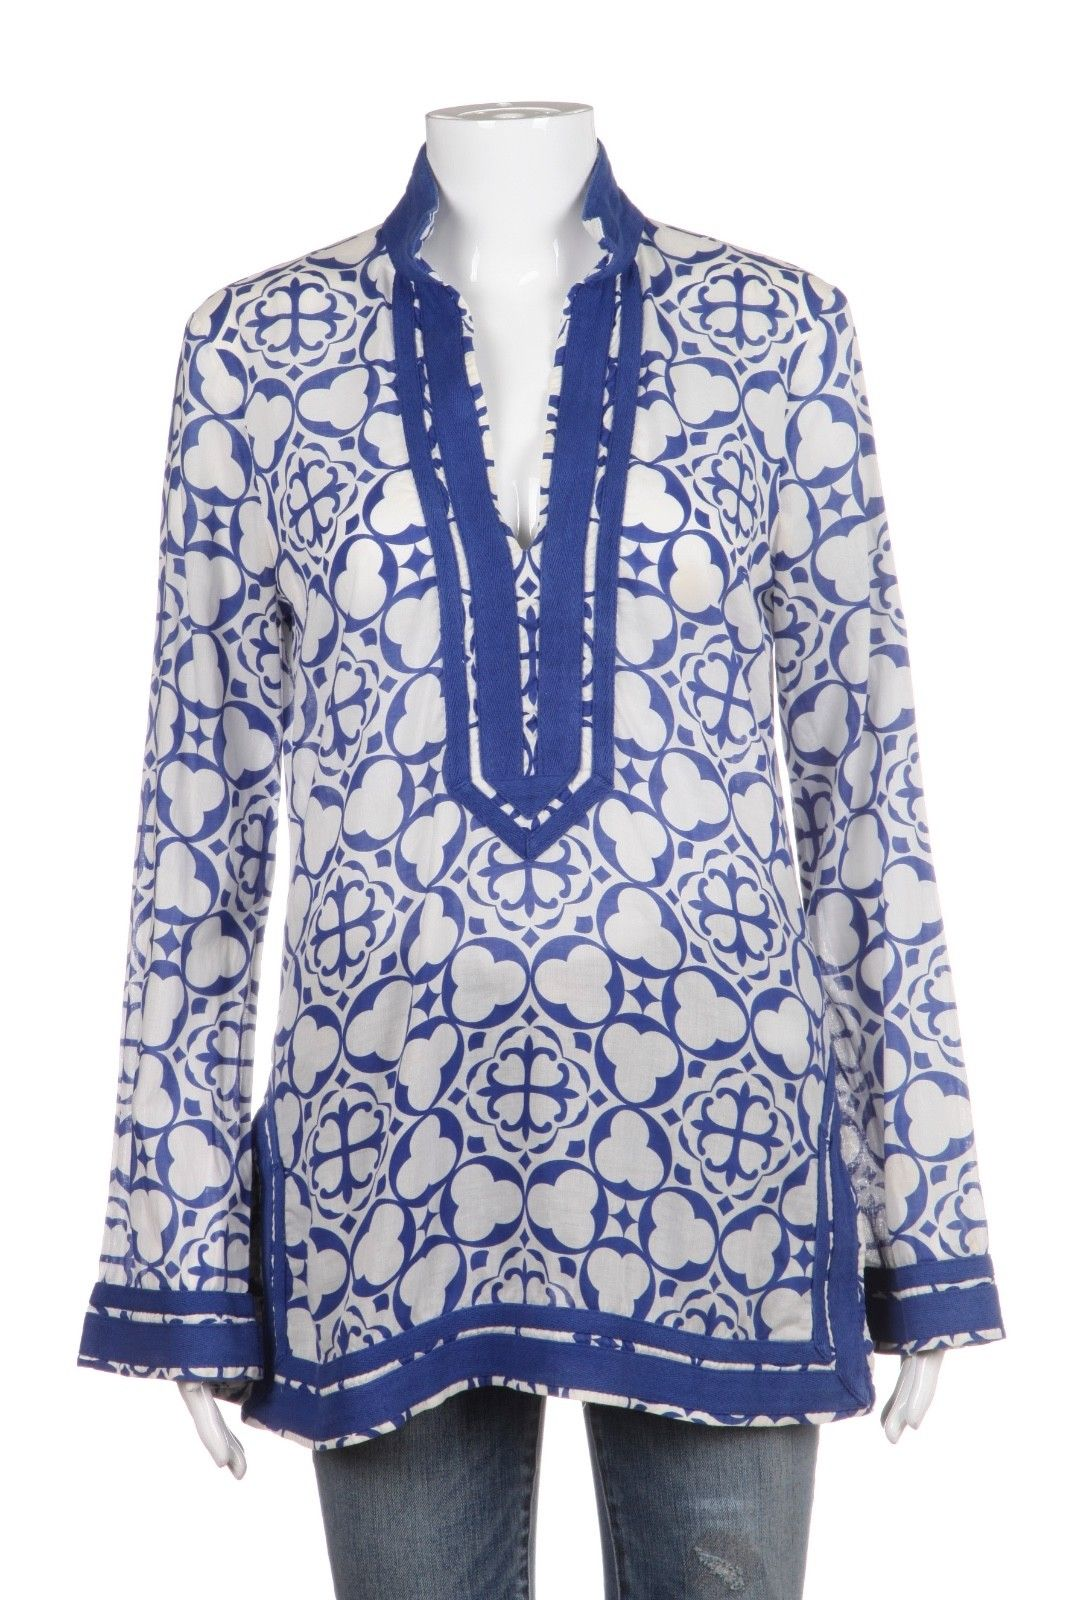 TORY BURCH Blouse White Blue Print Tunic Size 6